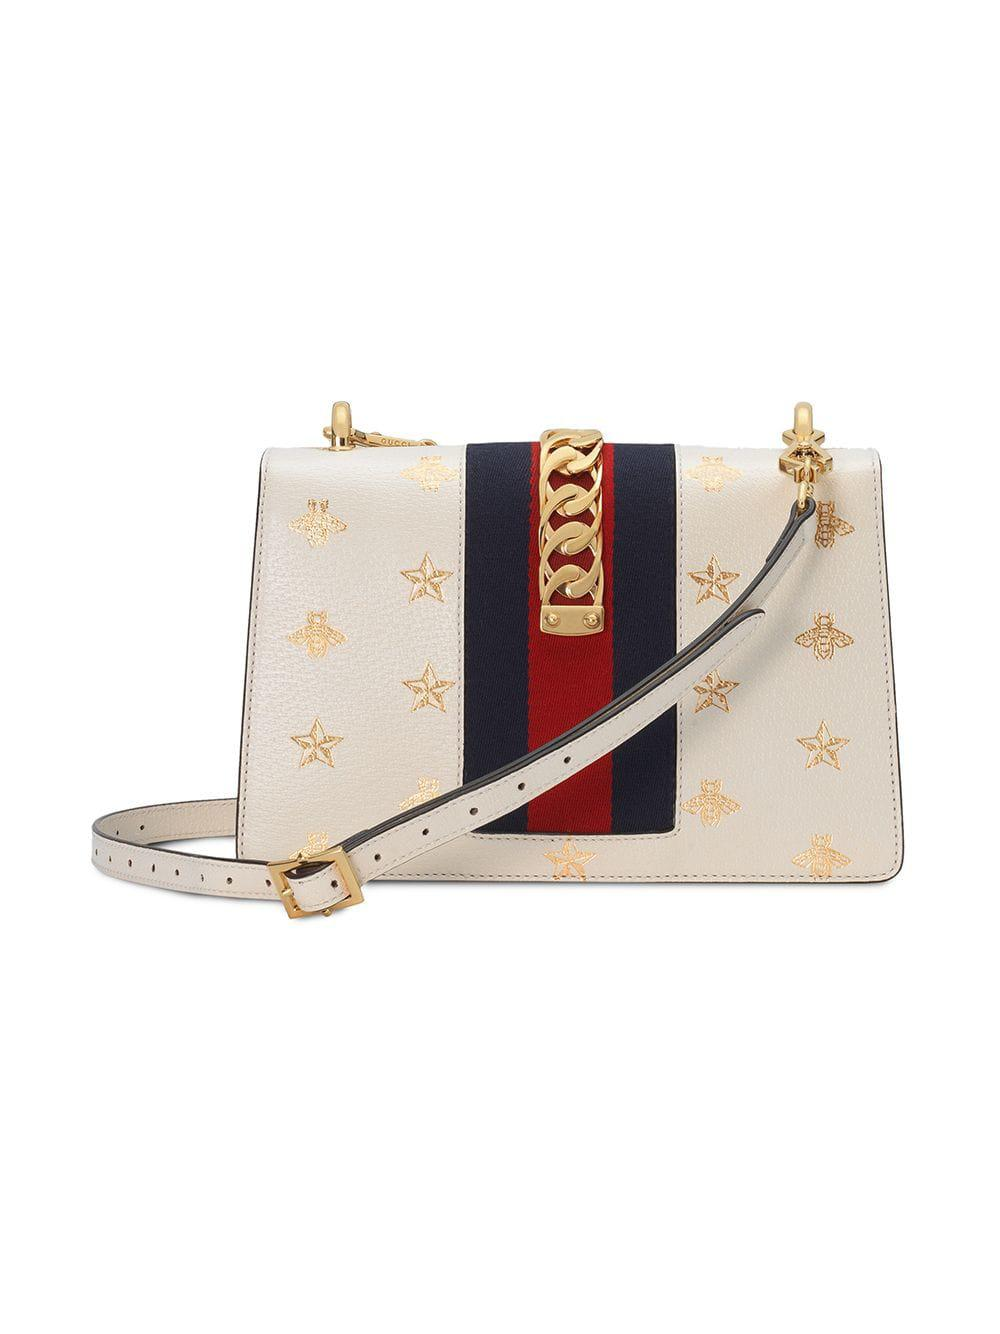 86bc778d78c40a Gucci Sylvie Bee Star Small Shoulder Bag in White - Lyst